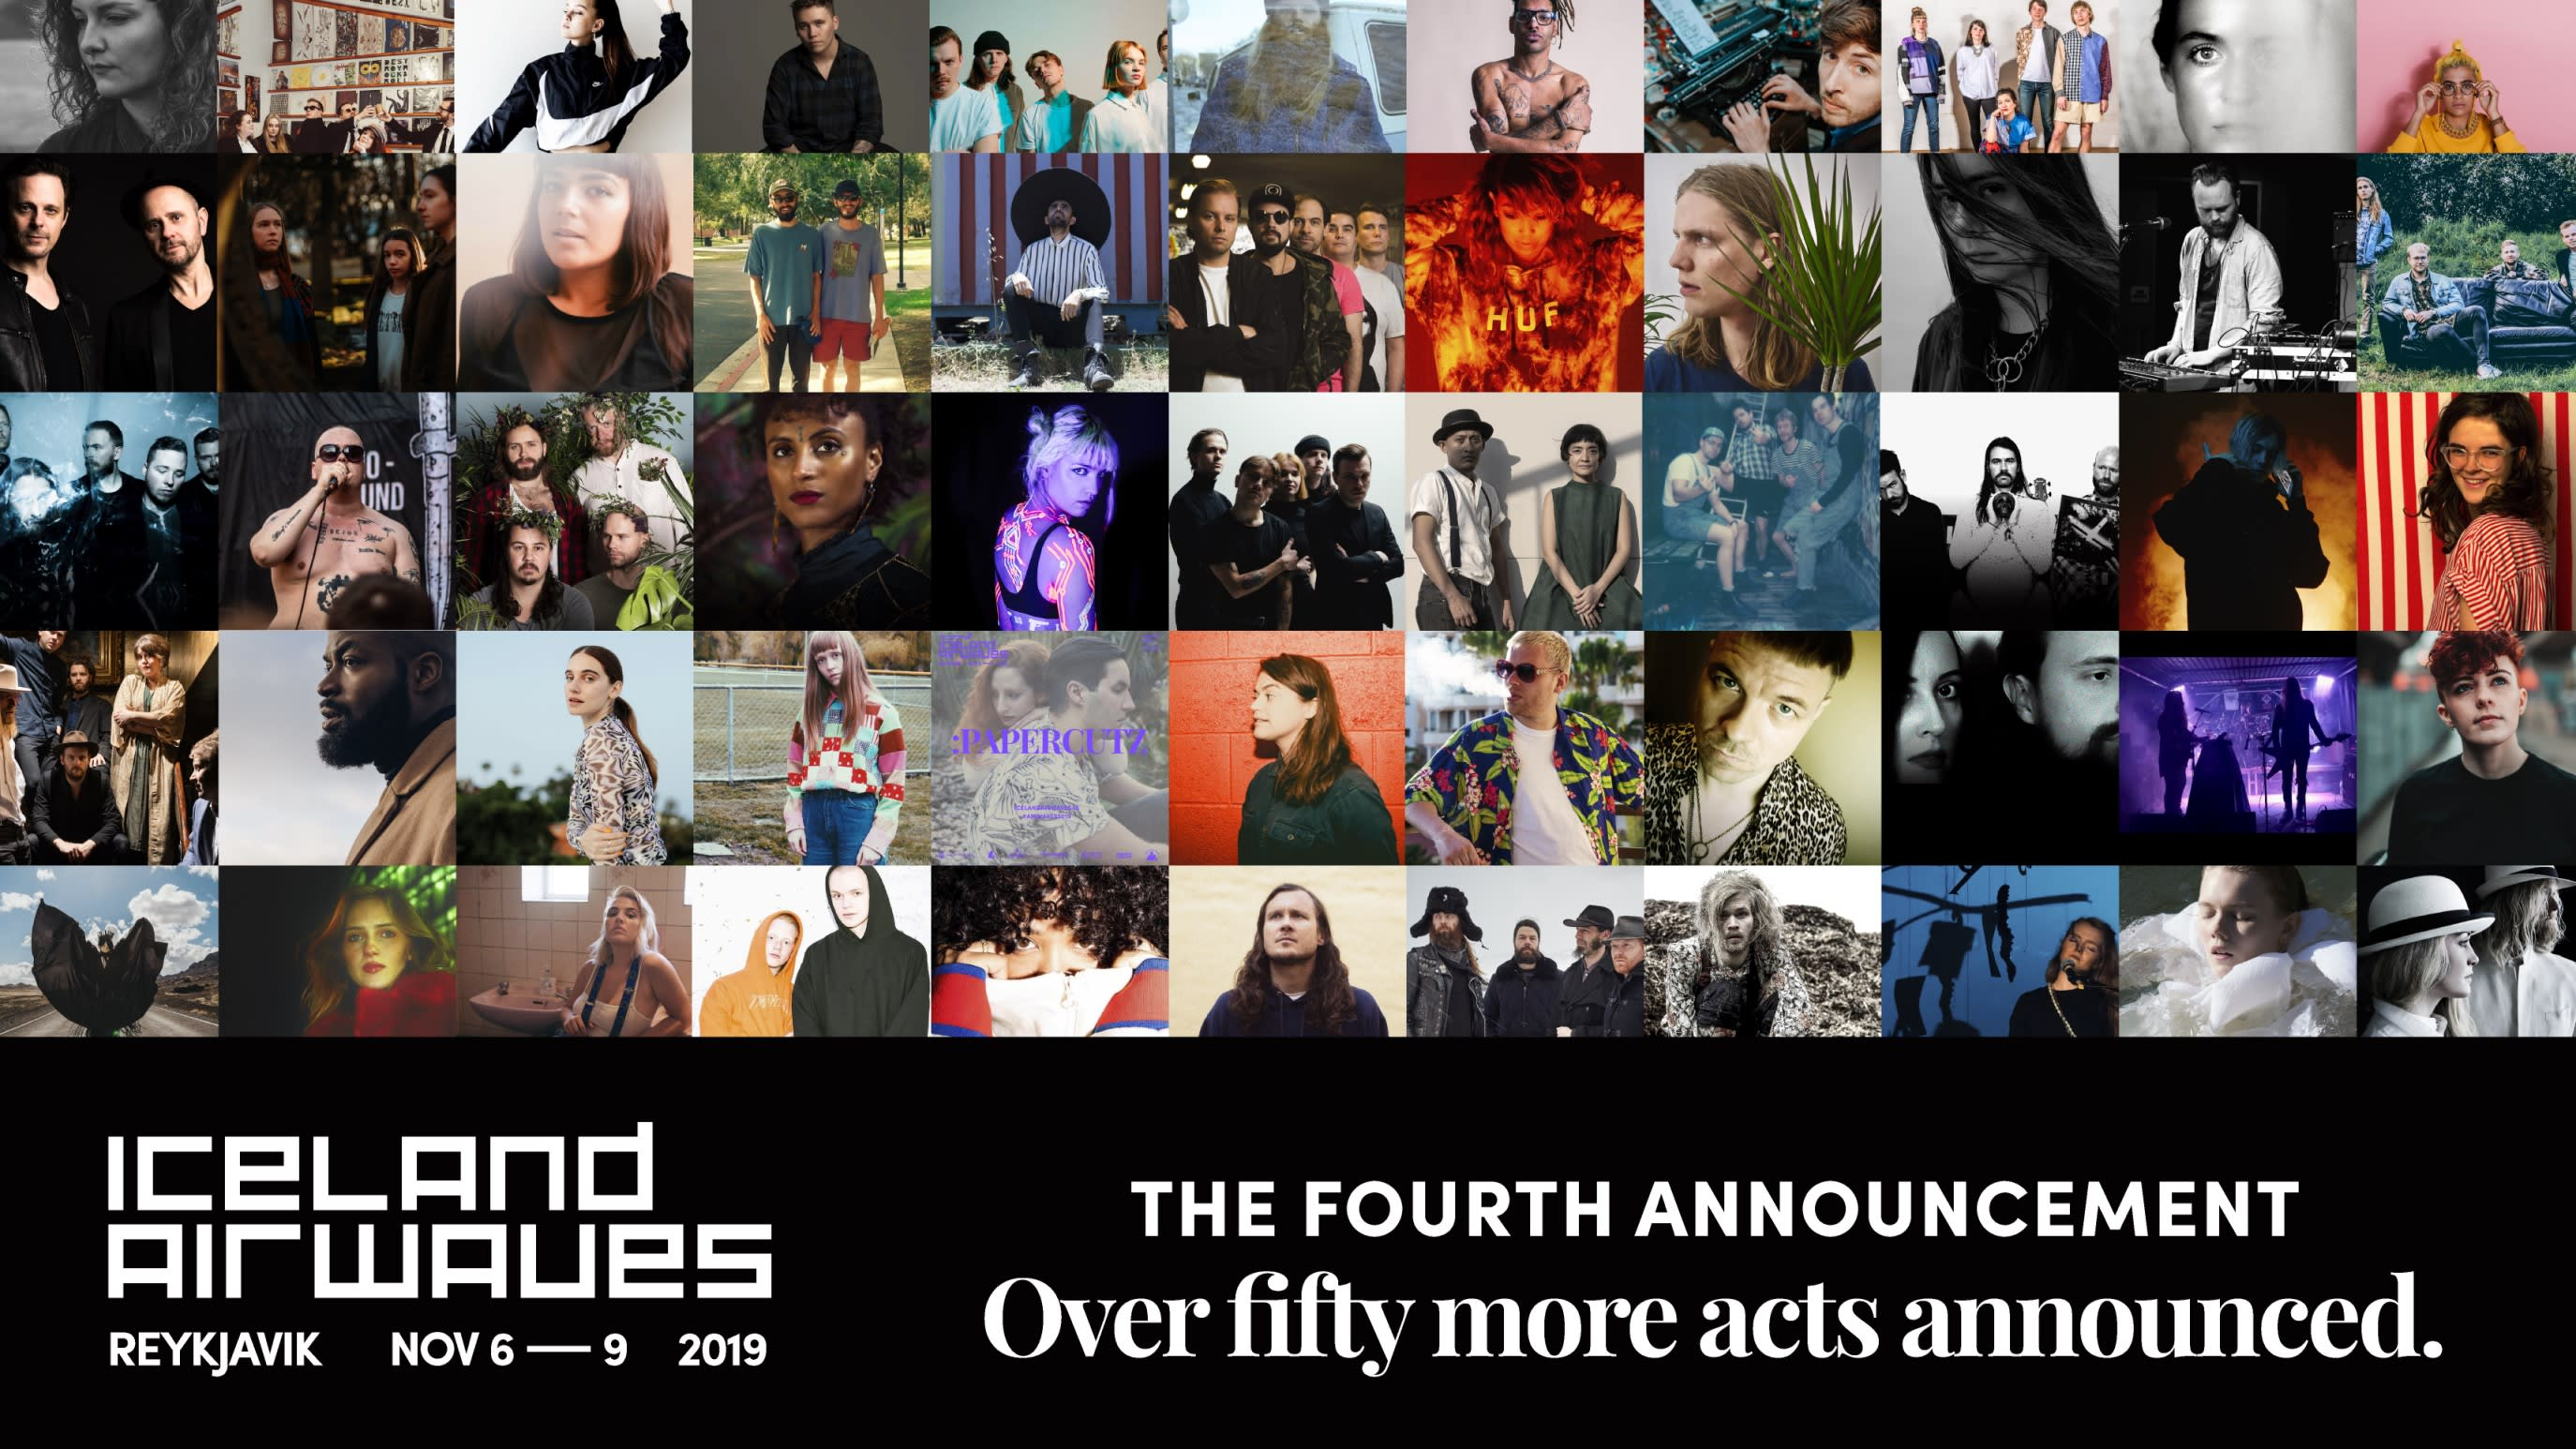 Iceland Airwaves 2019 fourth announcement poster